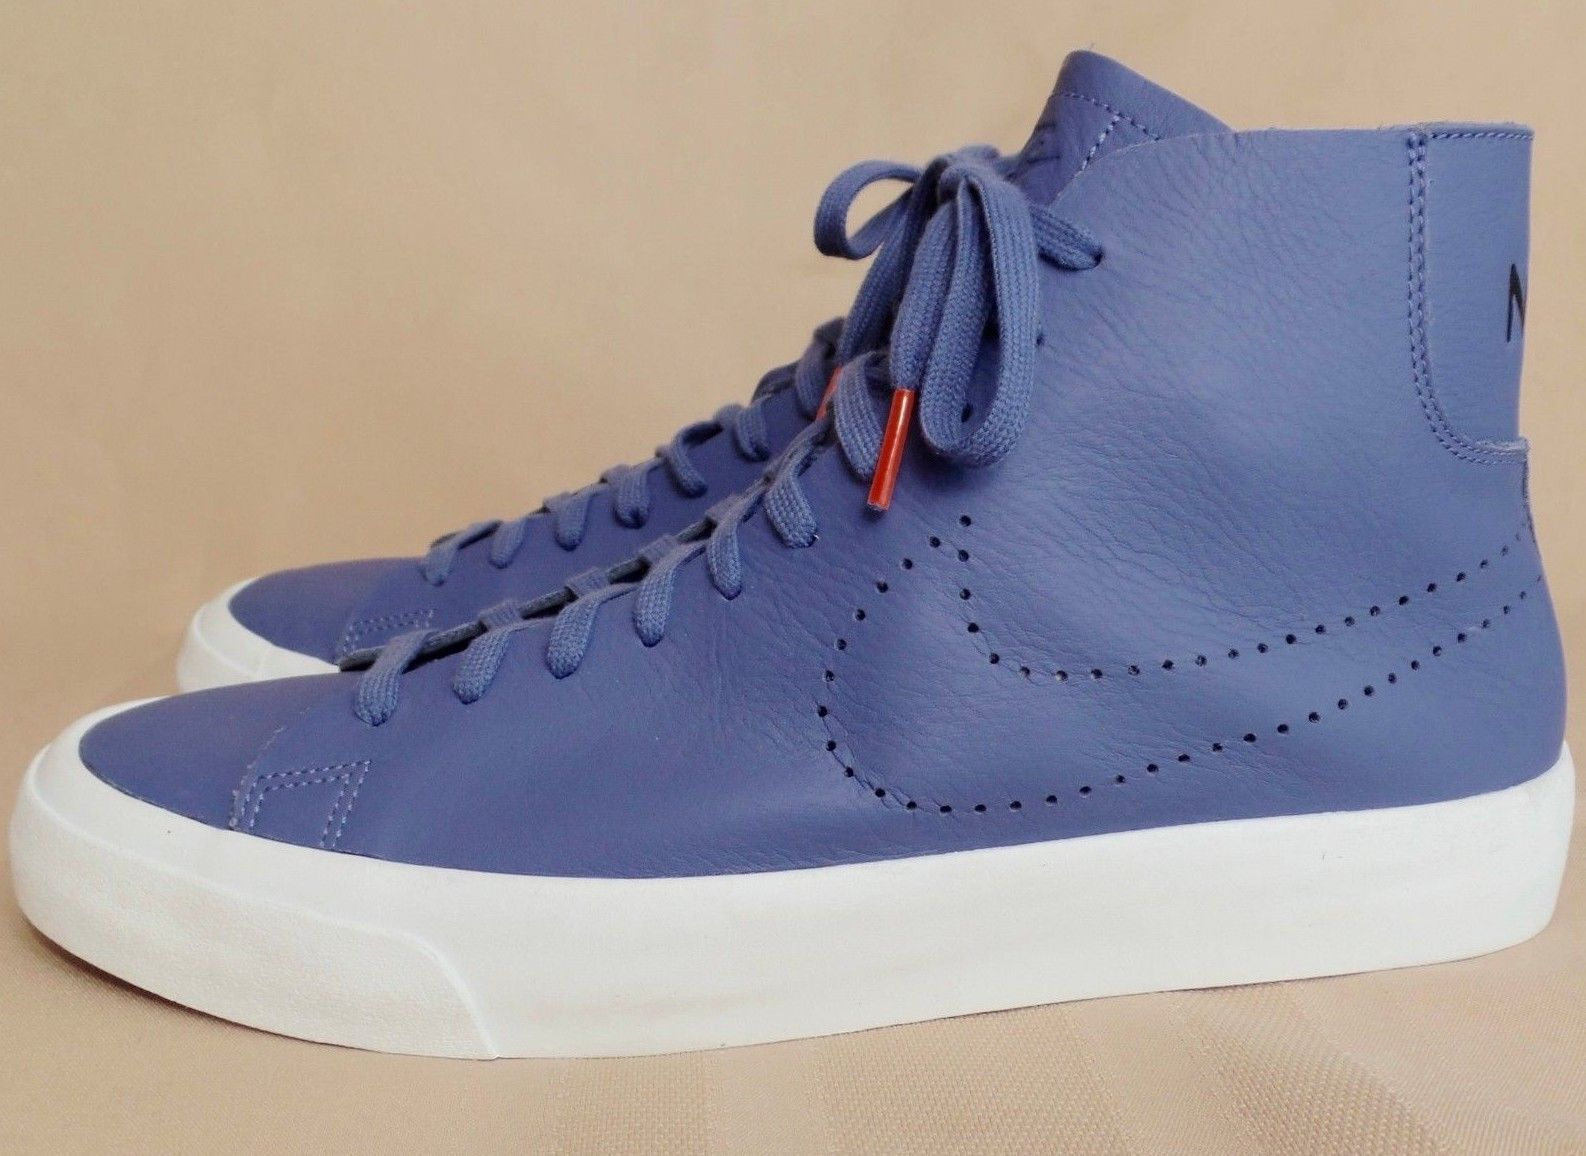 4e0c3884150 NEW Nike Mens Blazer Studio Italian Leather Blue Moon White 880870-400  Sneakers